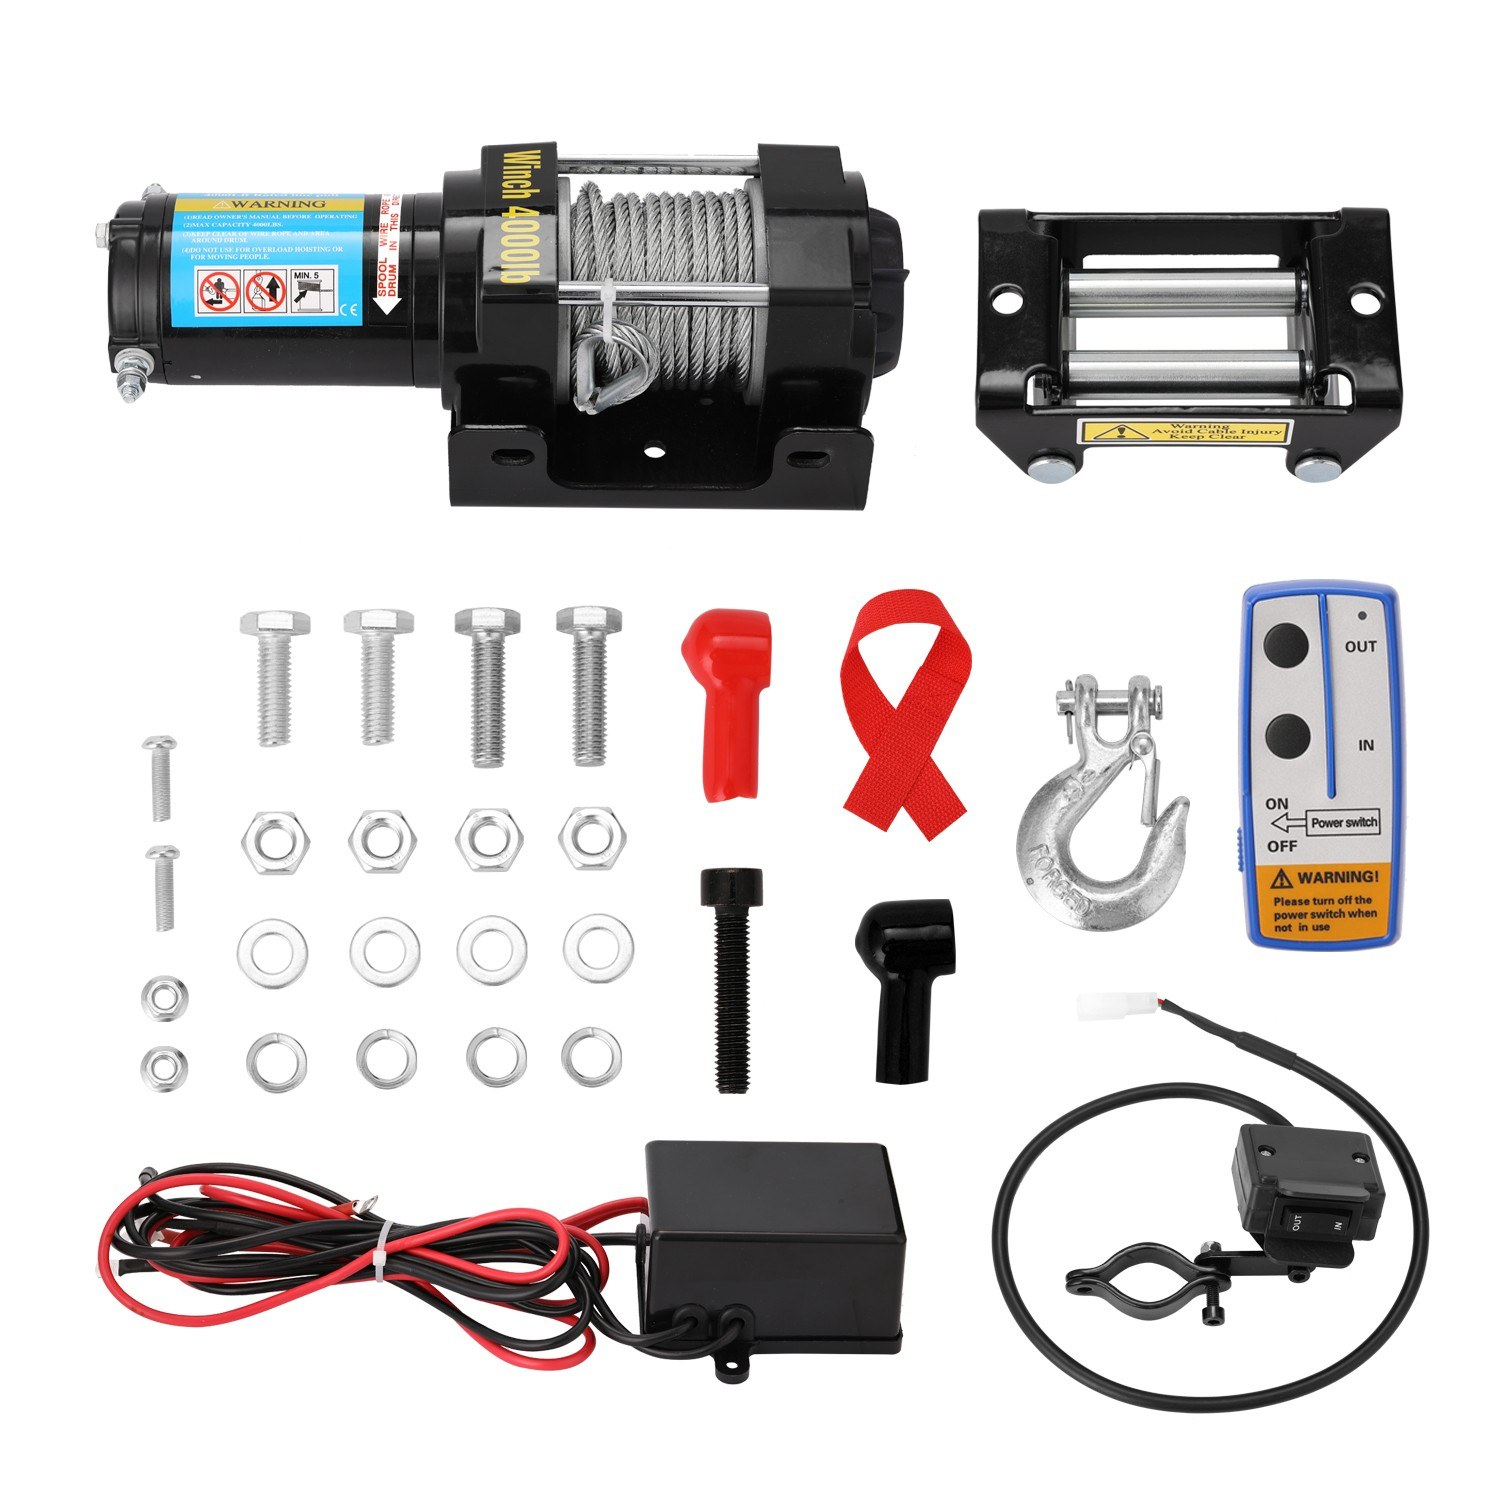 Tomtop - [EU Clearance Sale] 63% OFF 4000lbs Electric Recovery Winch Kit ATV Trailer Truck Car, $112.99 (Inclusive of VAT)